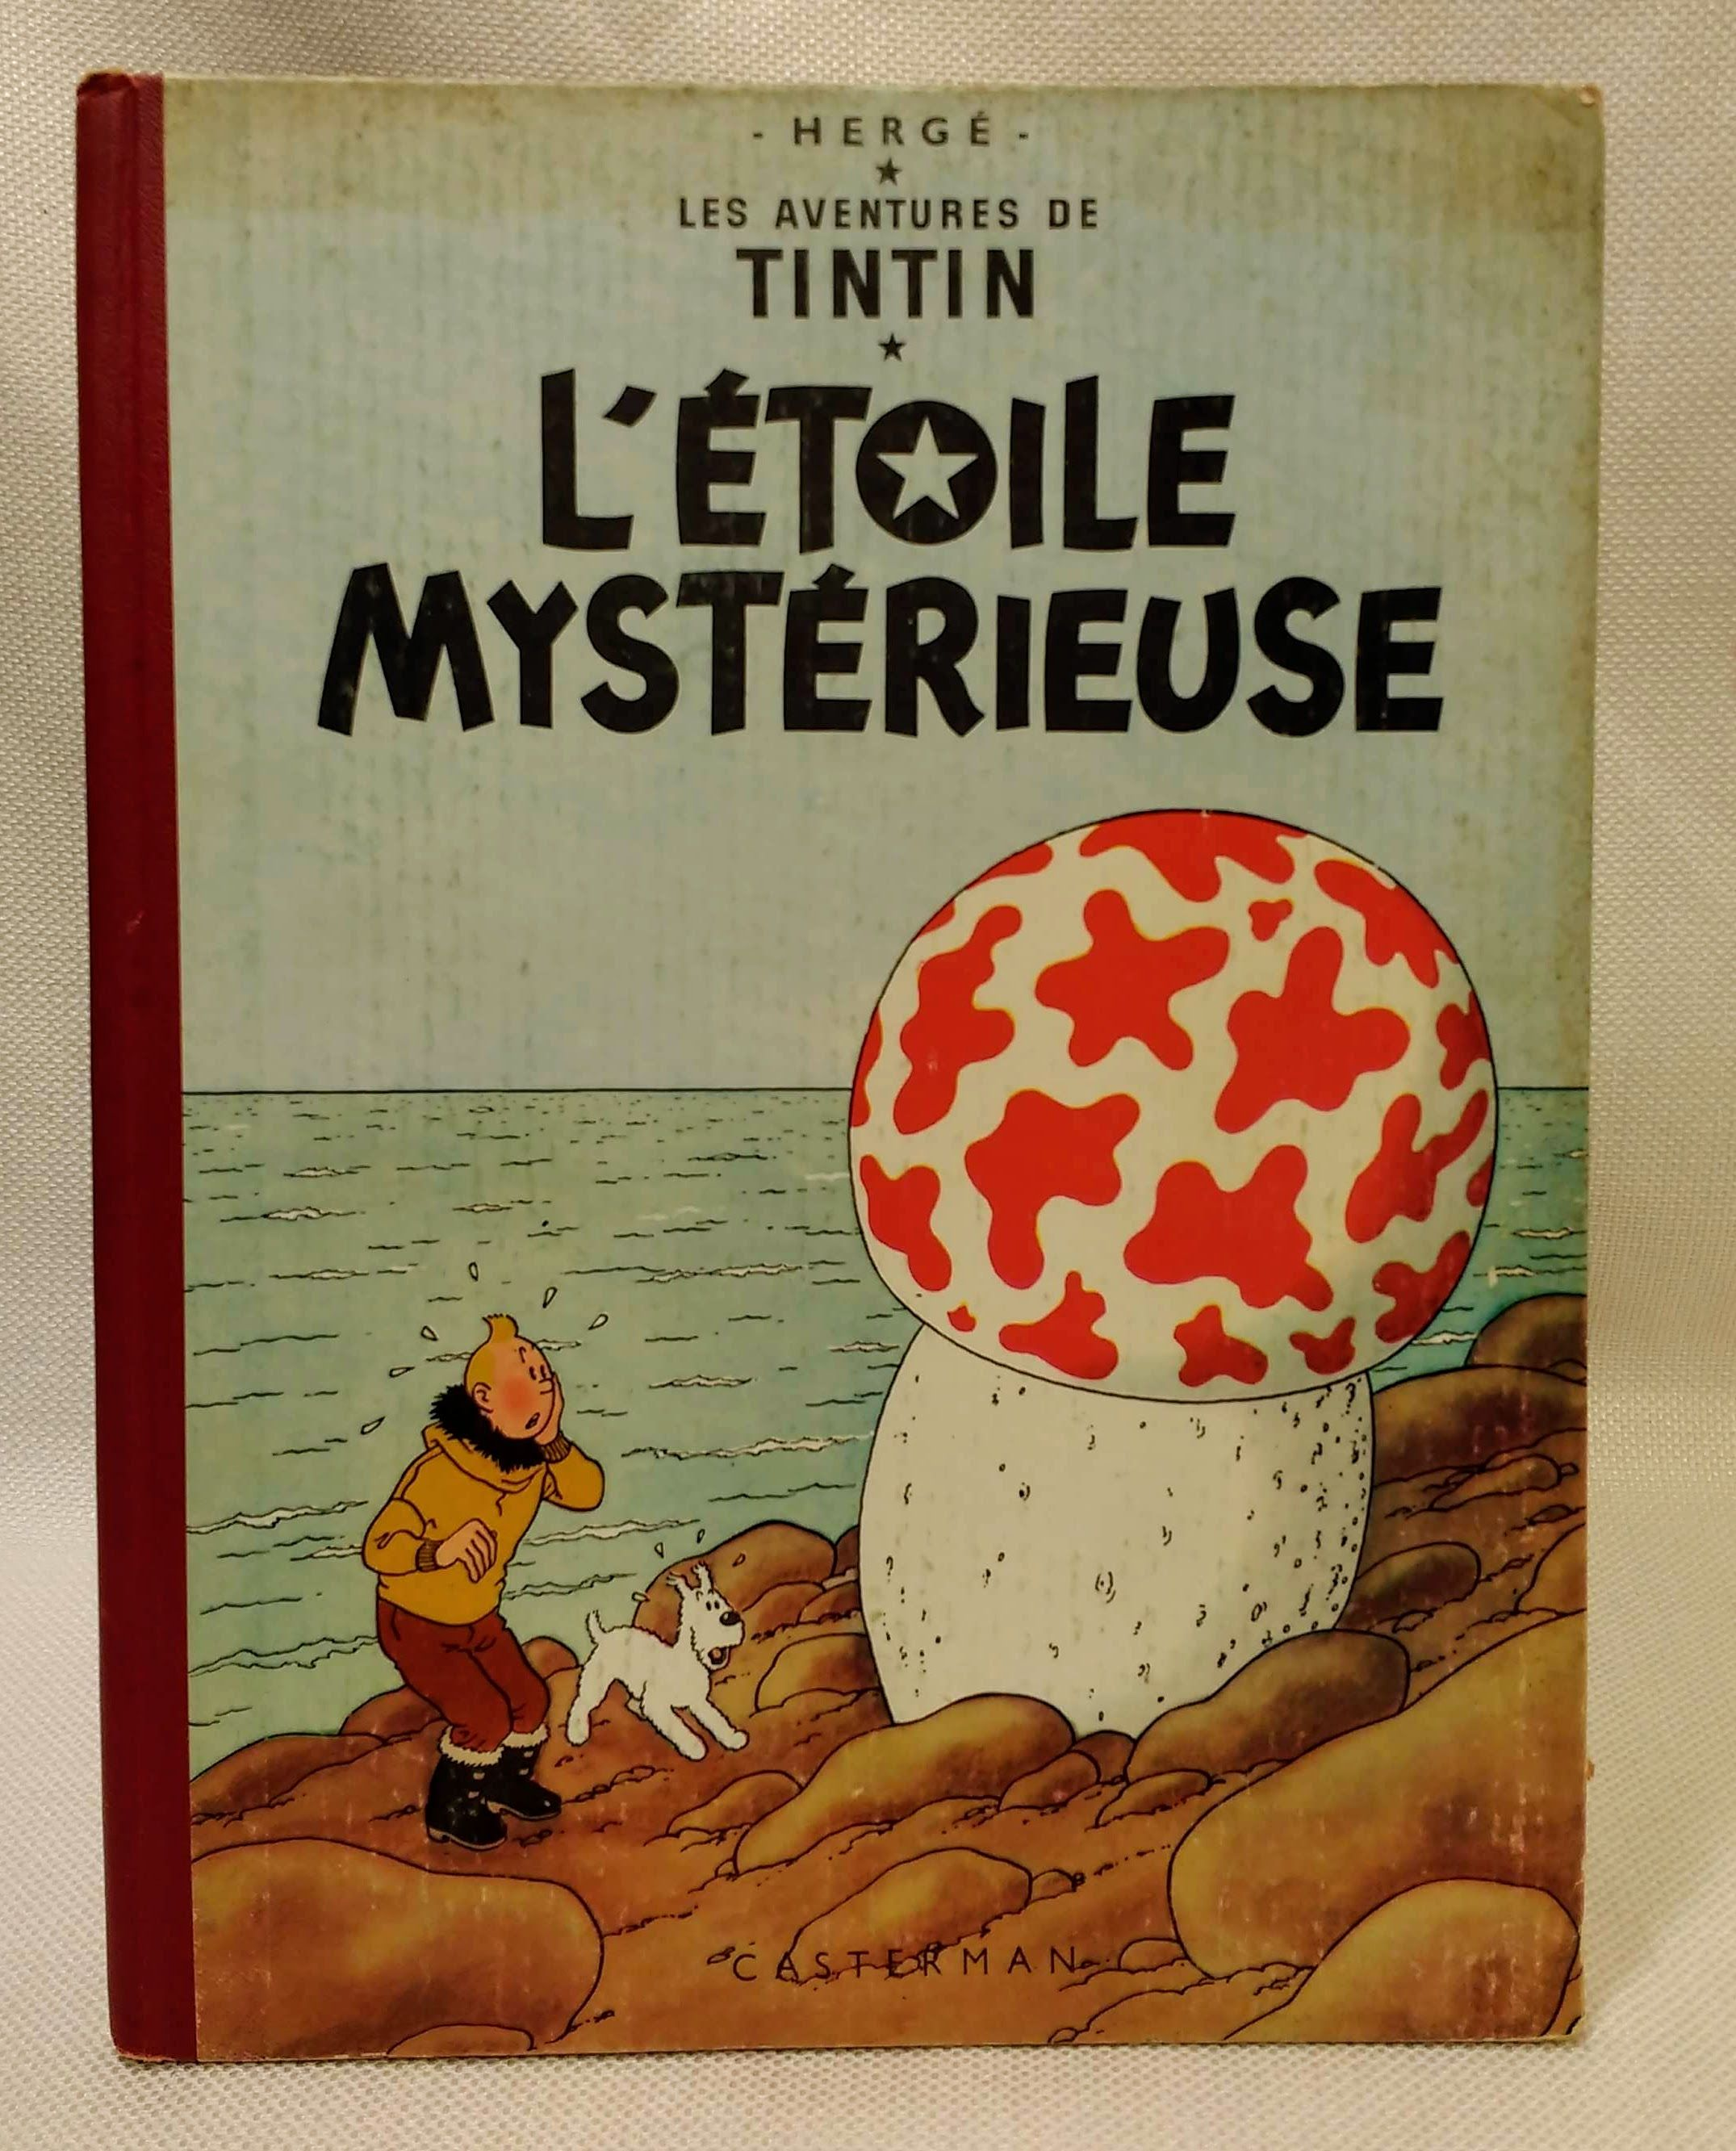 Les Aventures de Tintin: L'Etoile Mysterieuse (French Edition of The Shooting Star), Herge